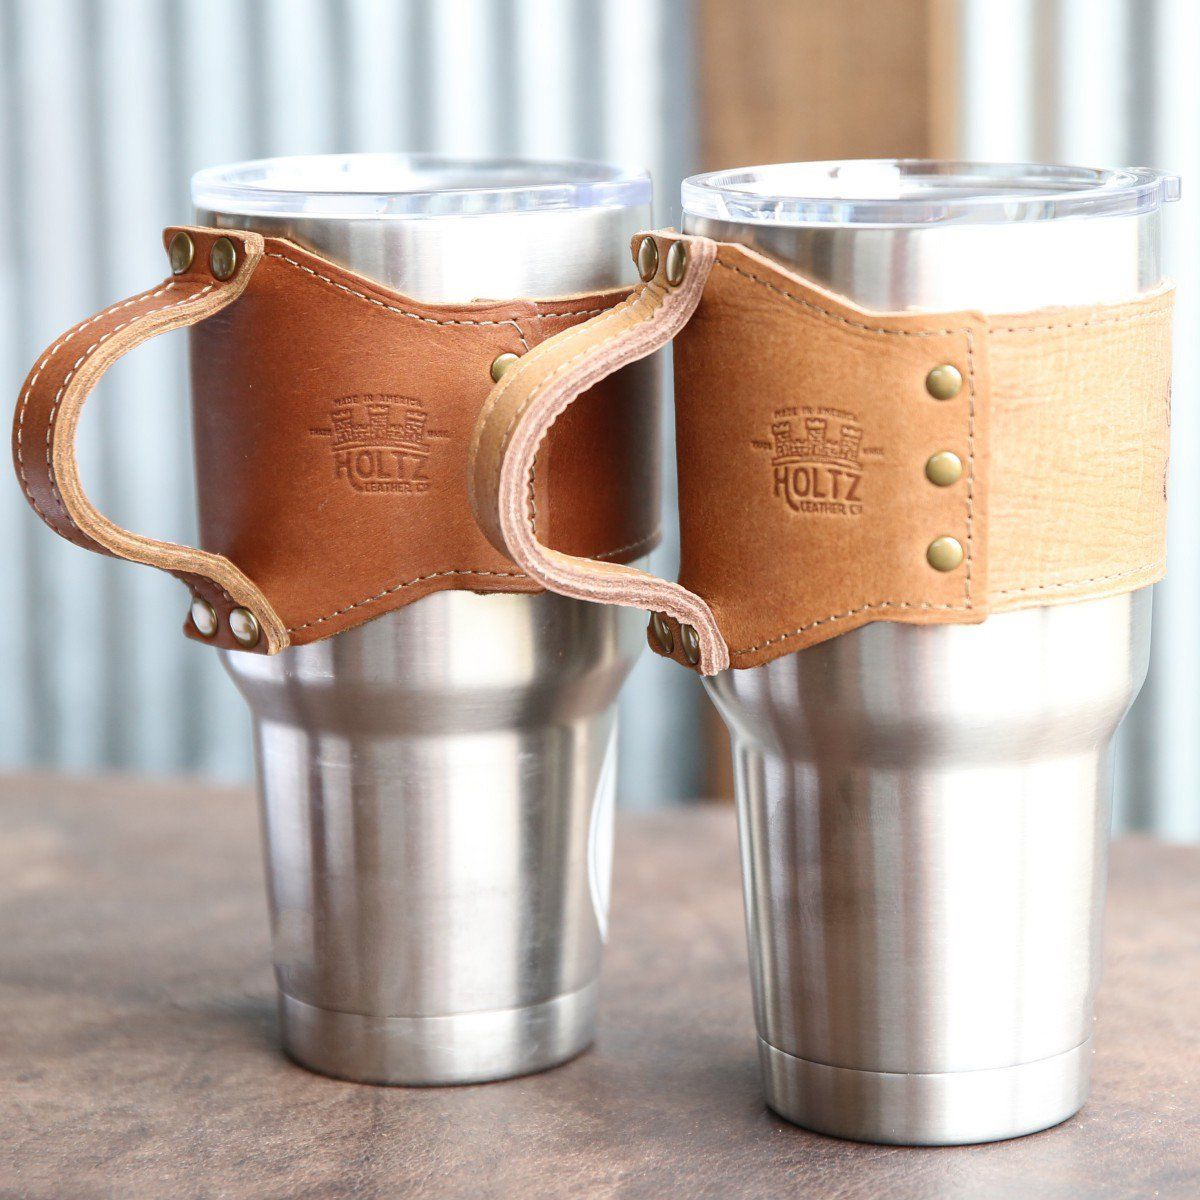 The Rocket City Leather Wrap with Handle For 30 oz Yeti